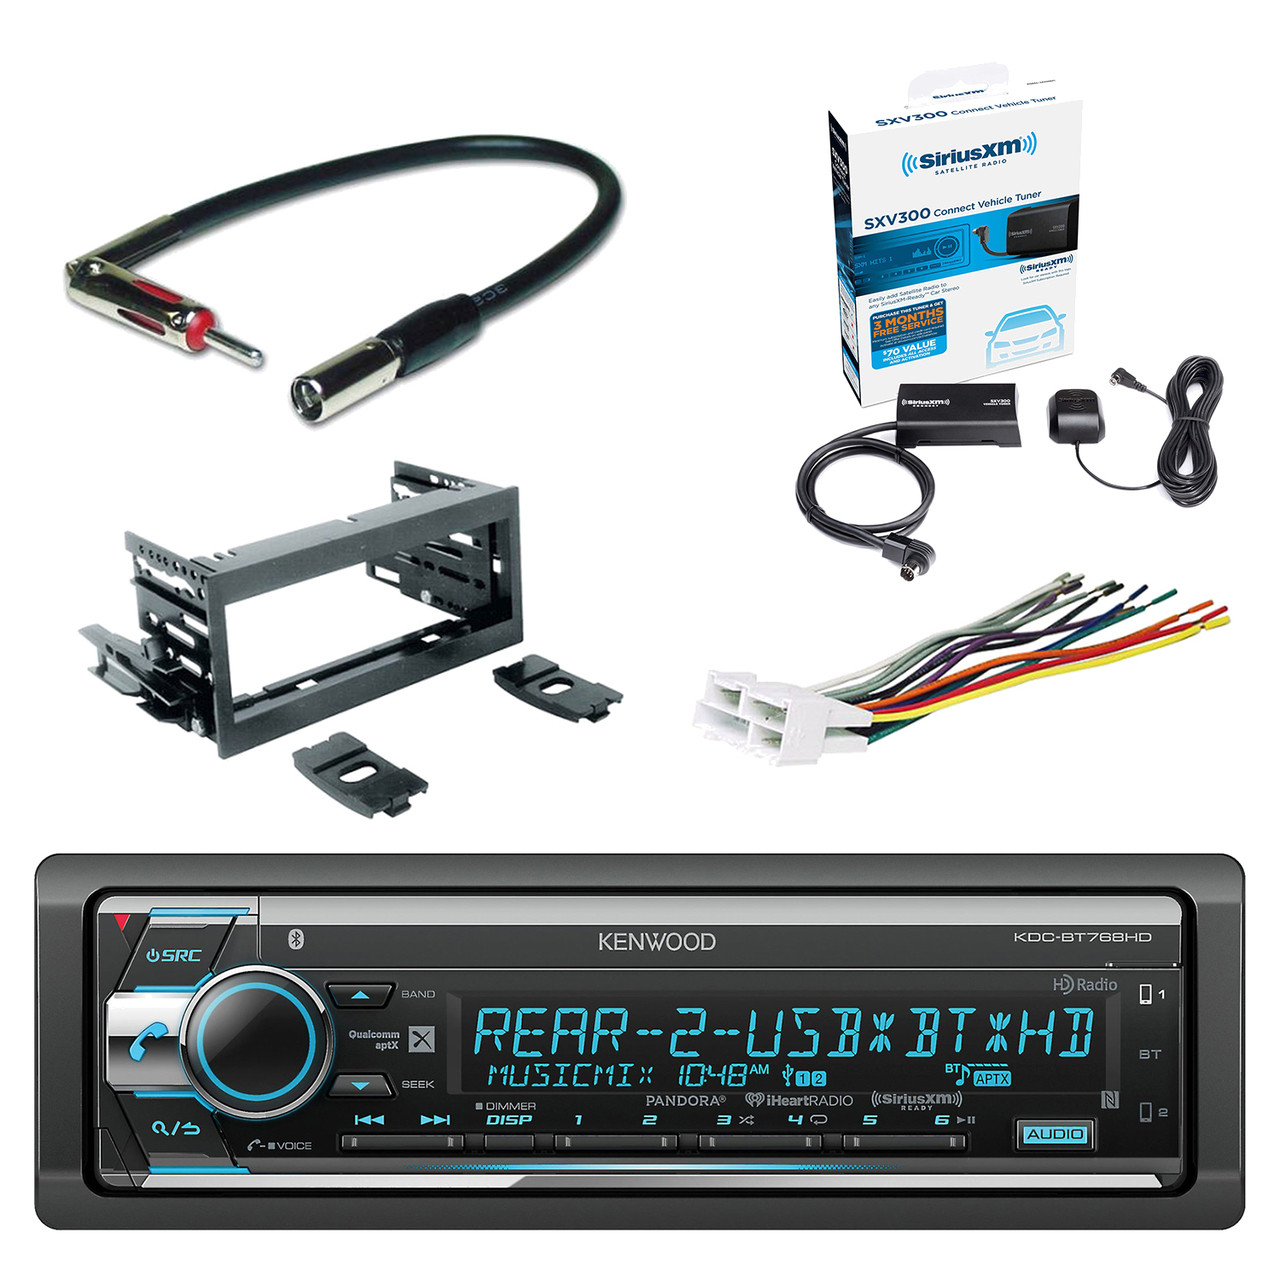 small resolution of  car audio receiver with bluetooth siriusxm satellite radio vehicle tuner kit scosche dash kit scosche gm micro delco xm radio wiring harness adapter